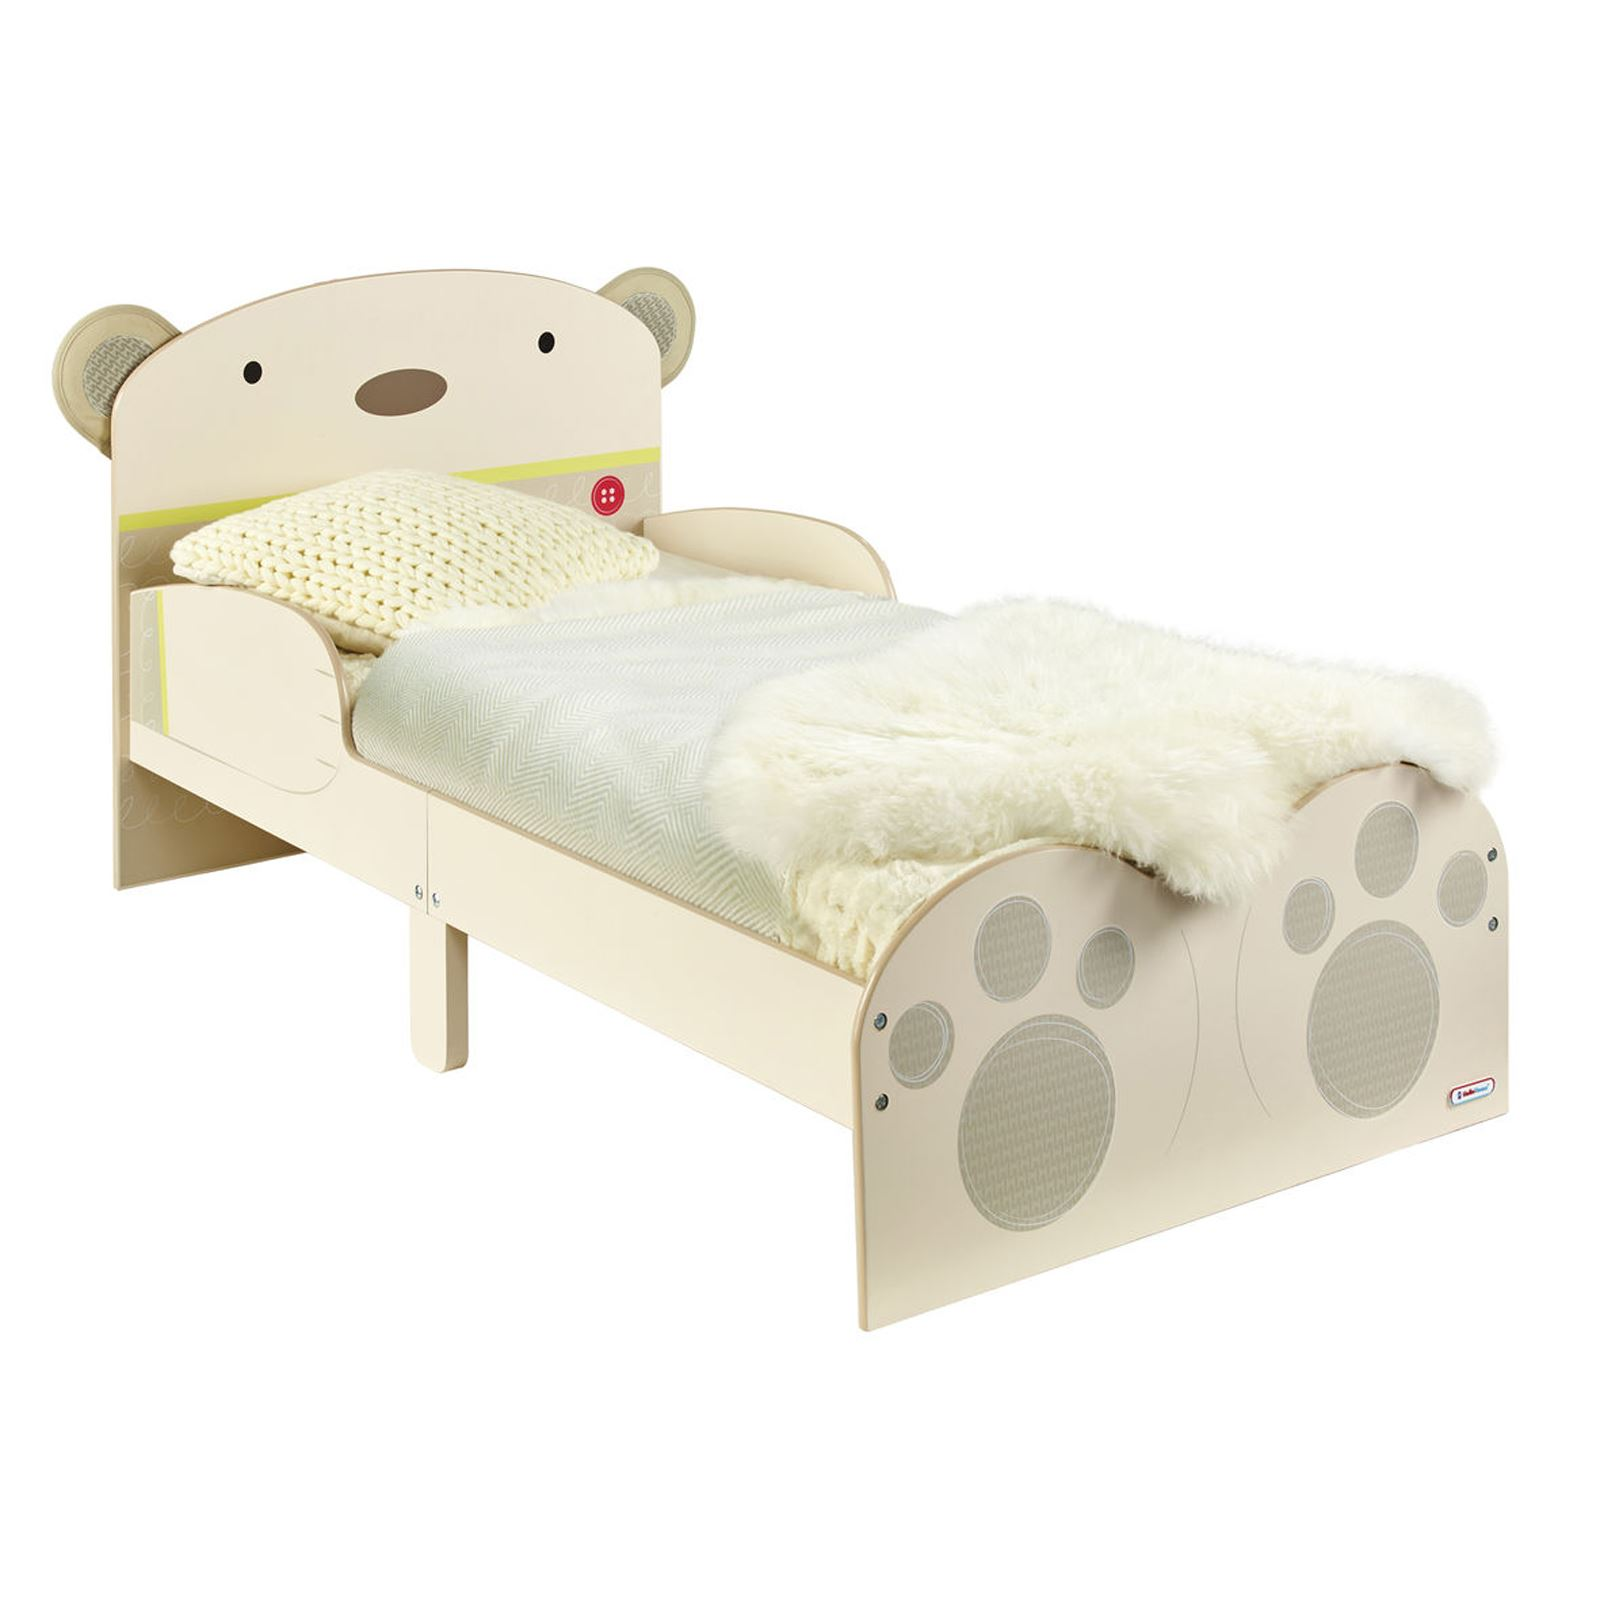 bed toddler mattress south africa milnerton gumtree a classifieds s beds children